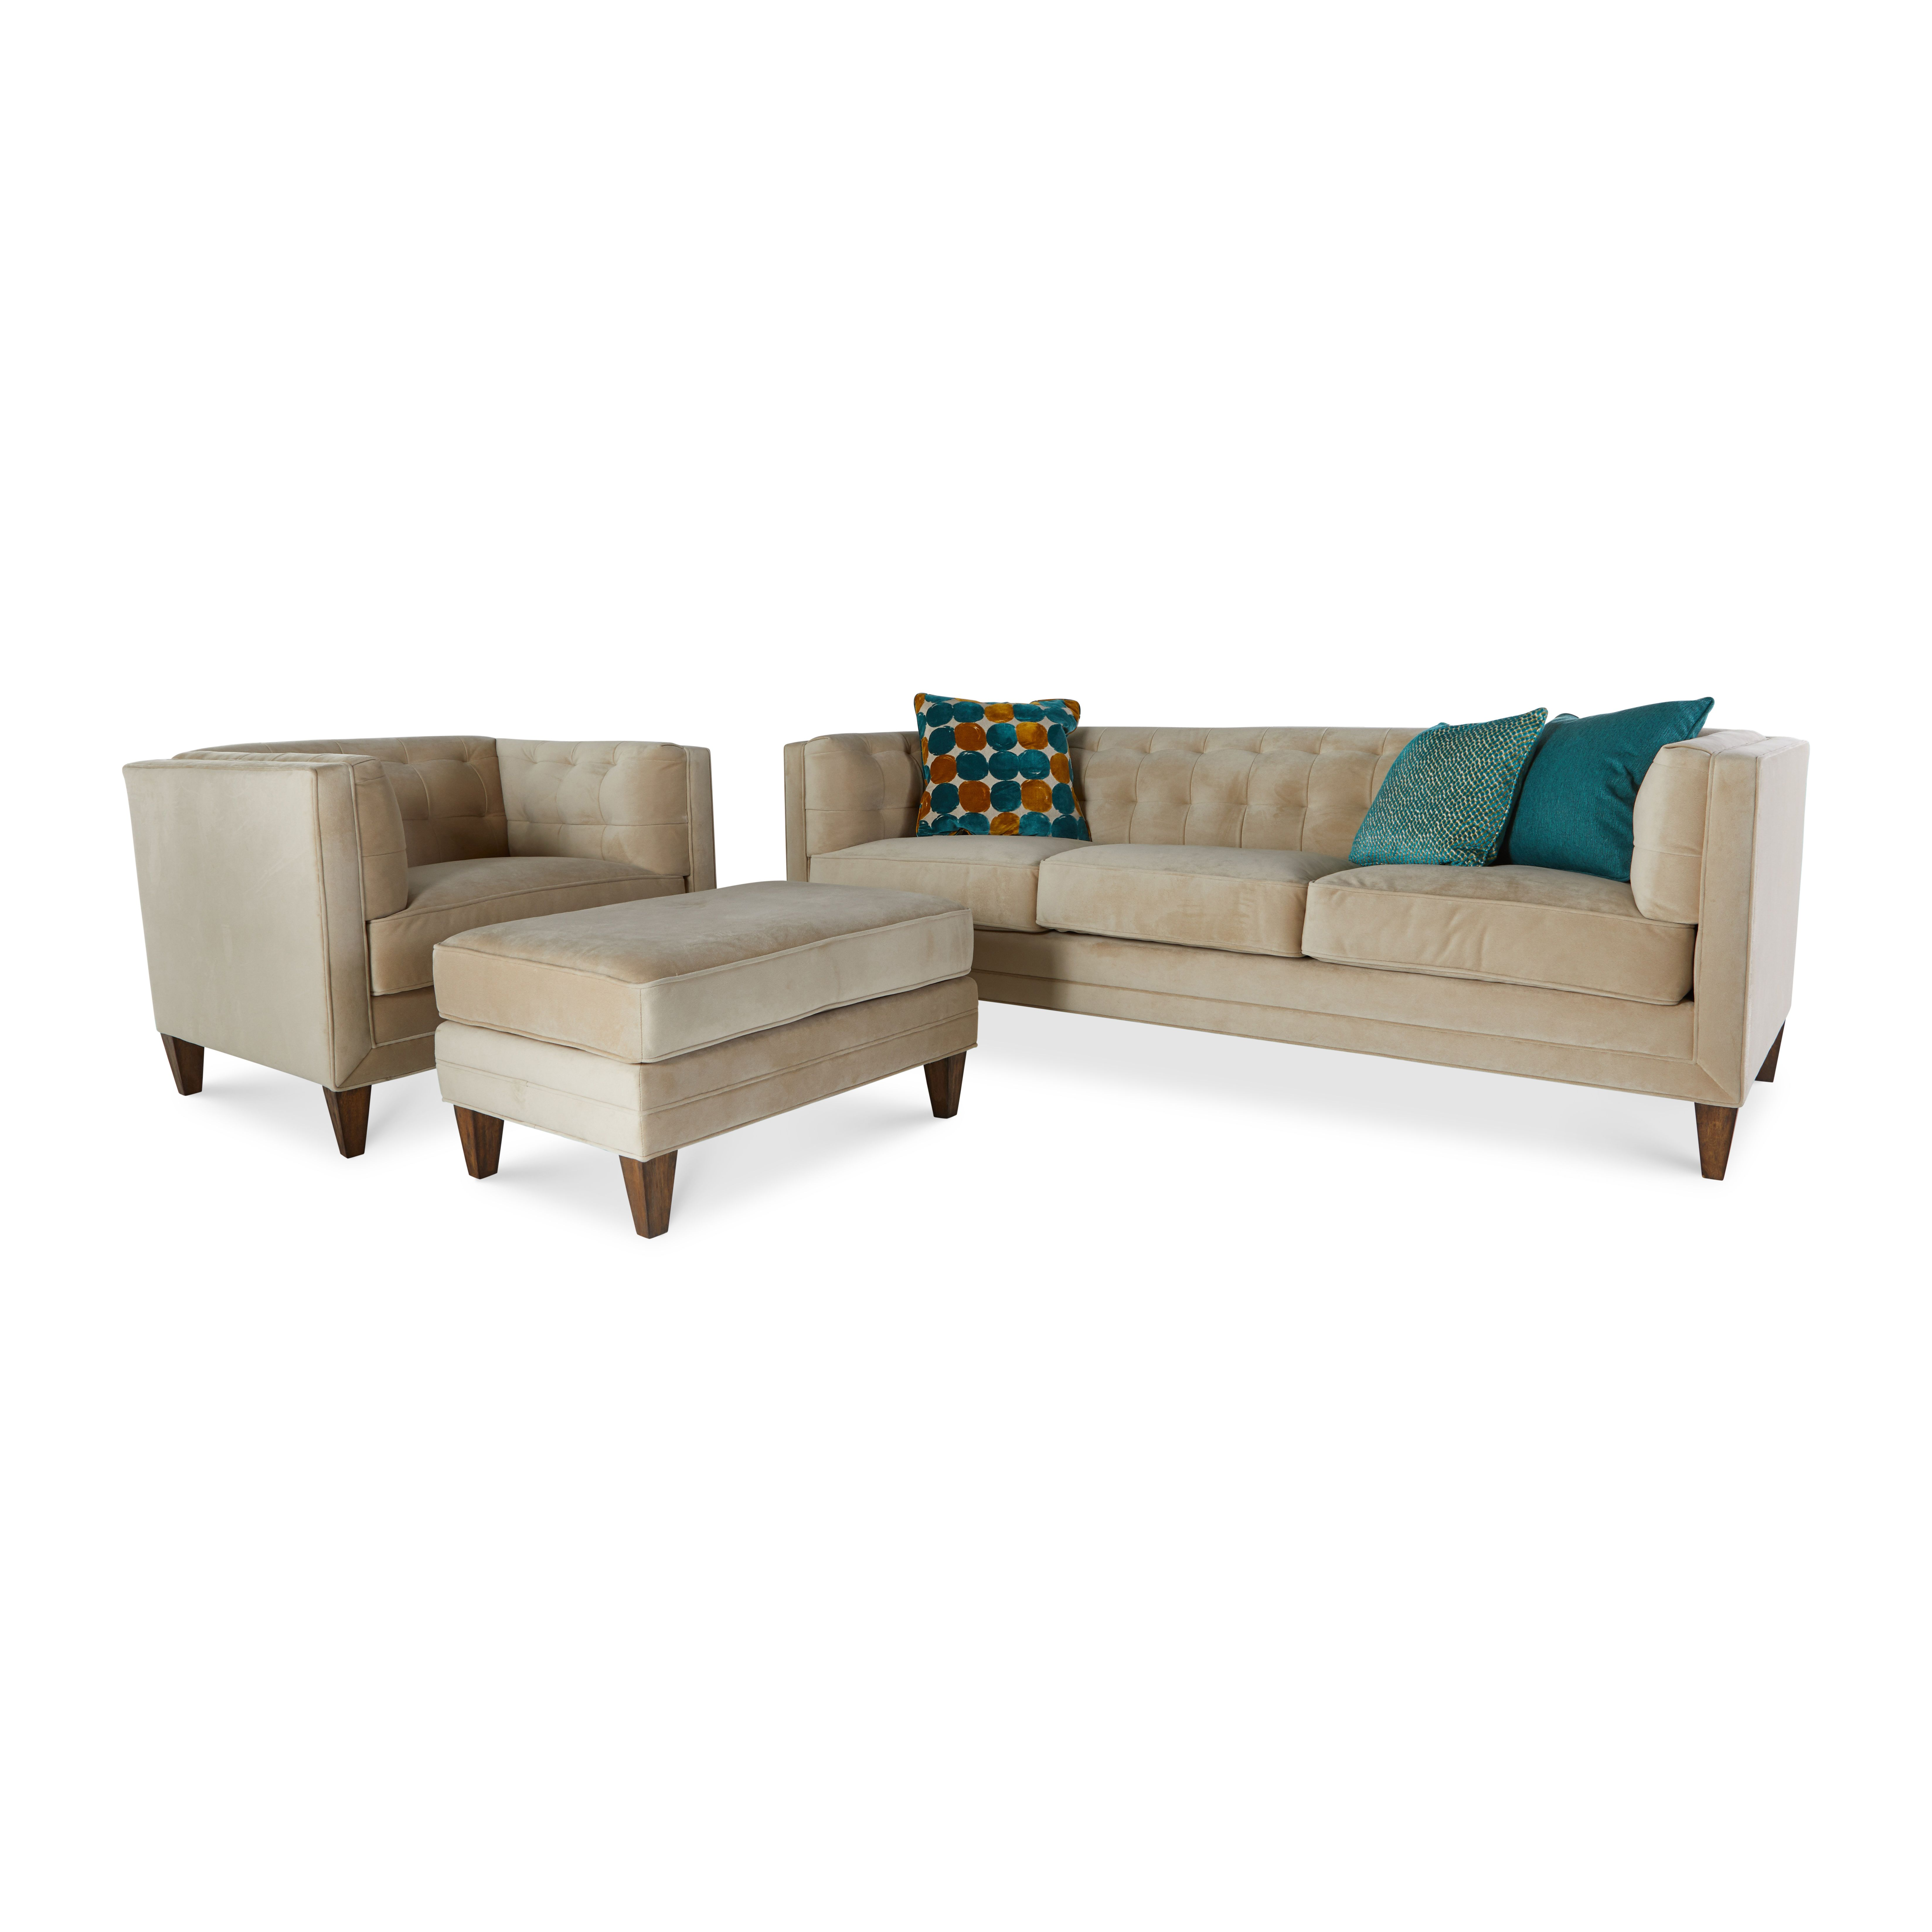 Adler Sofa And Chair Set With Images Power Reclining Loveseat